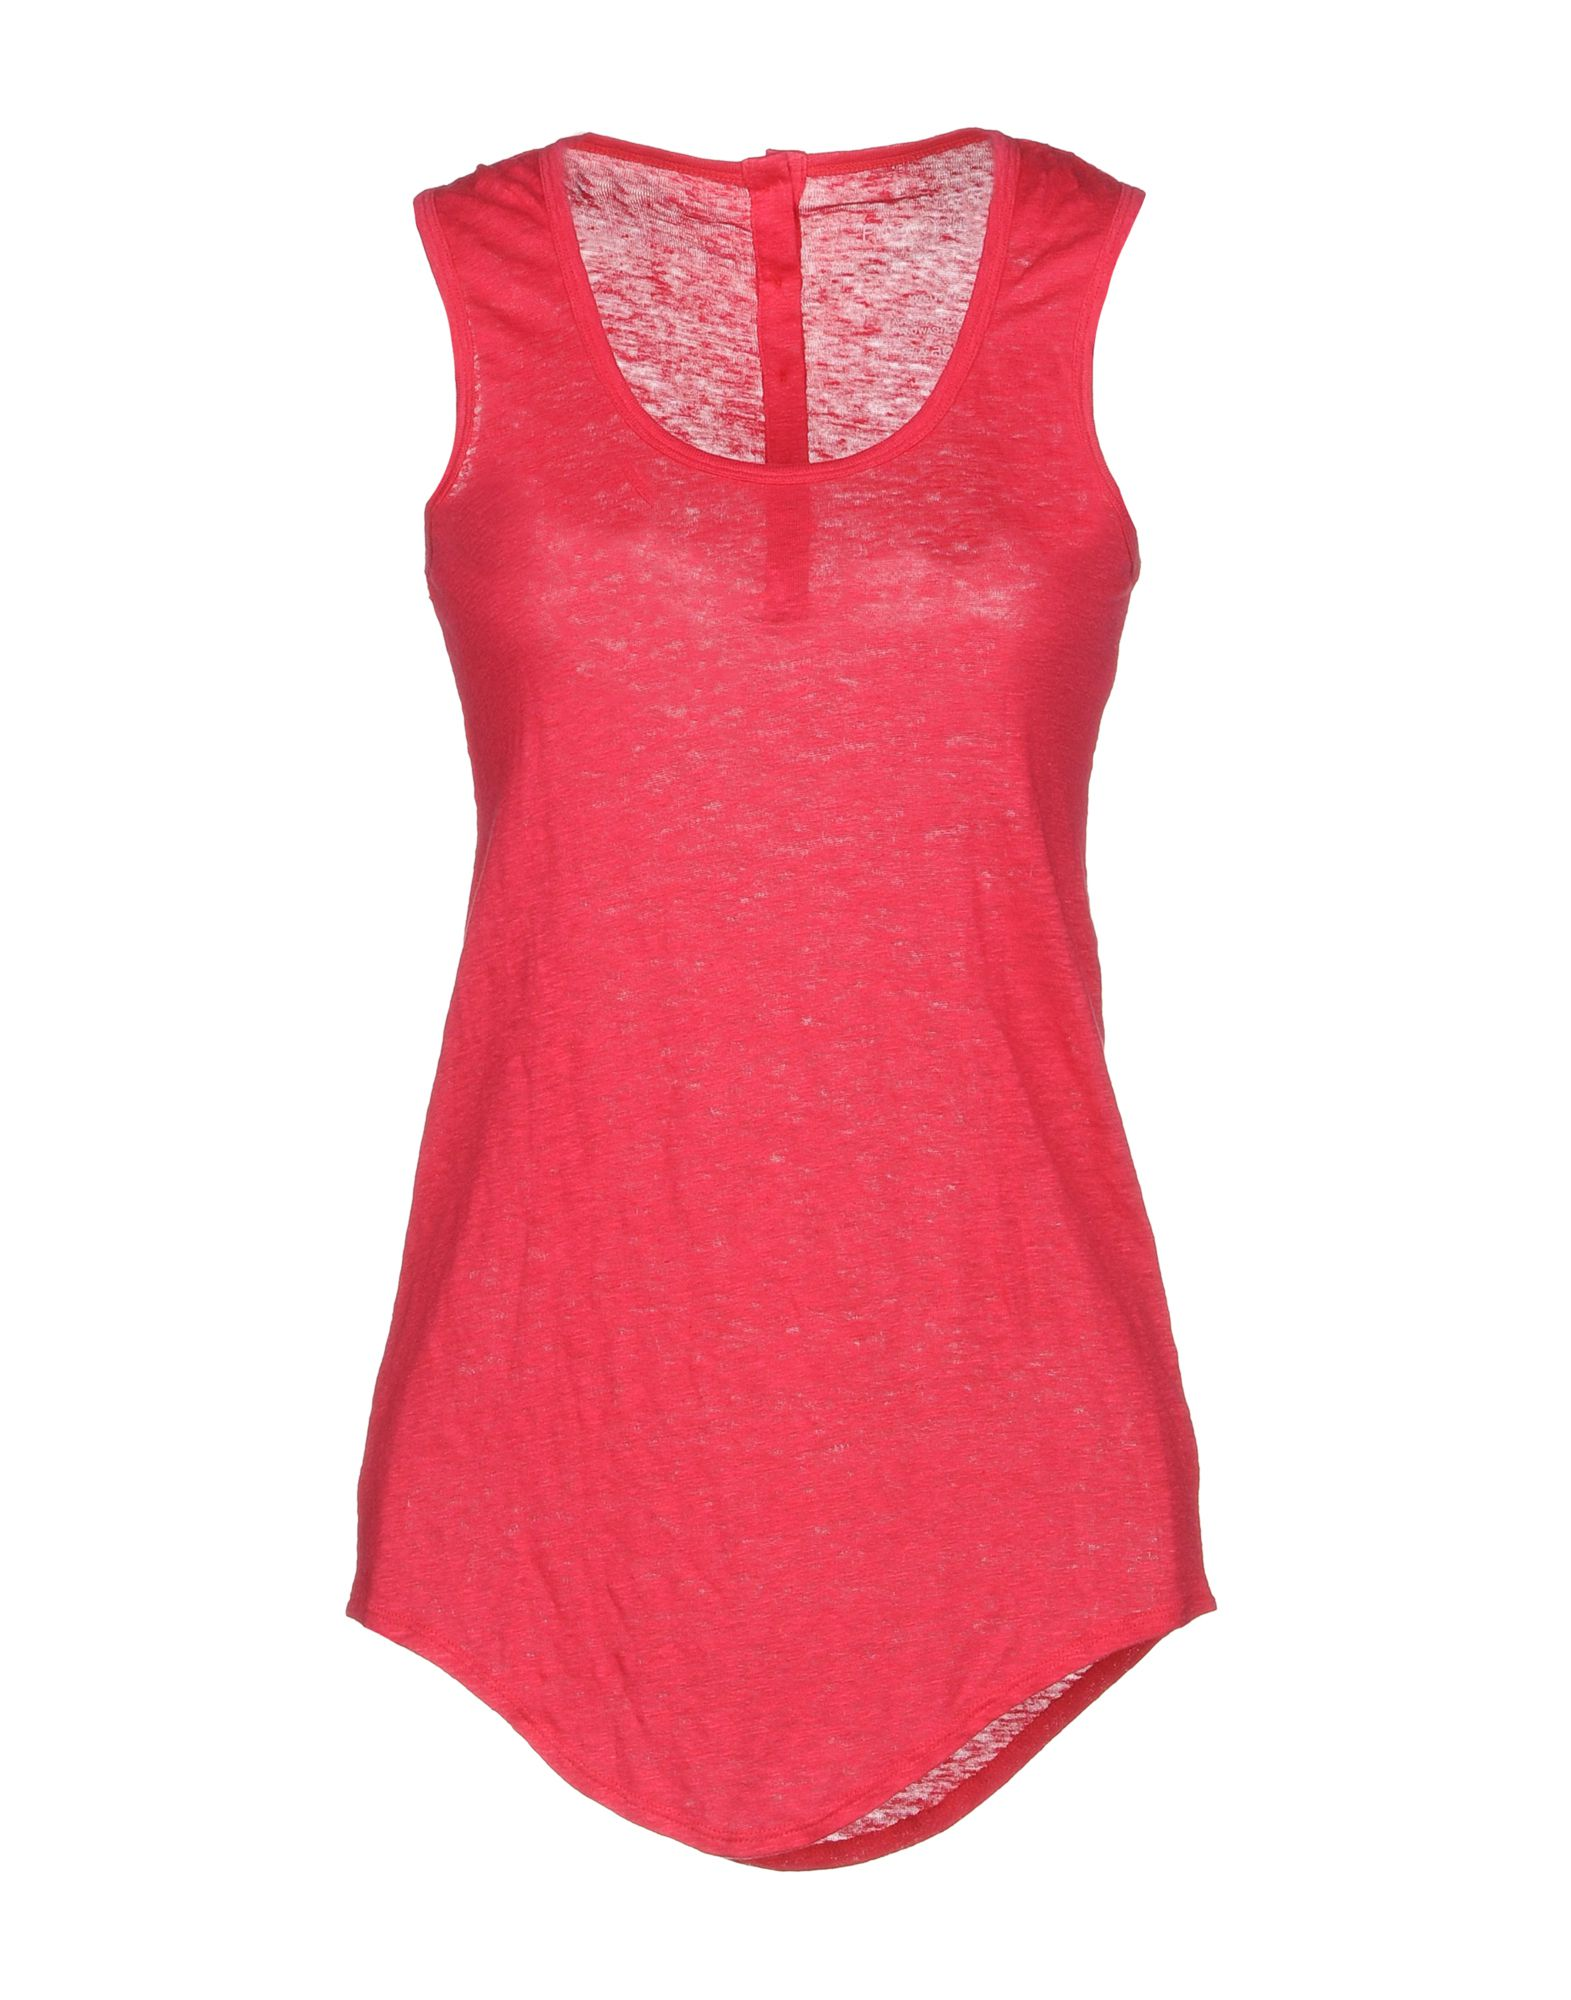 FINE COLLECTION Tank Top in Coral